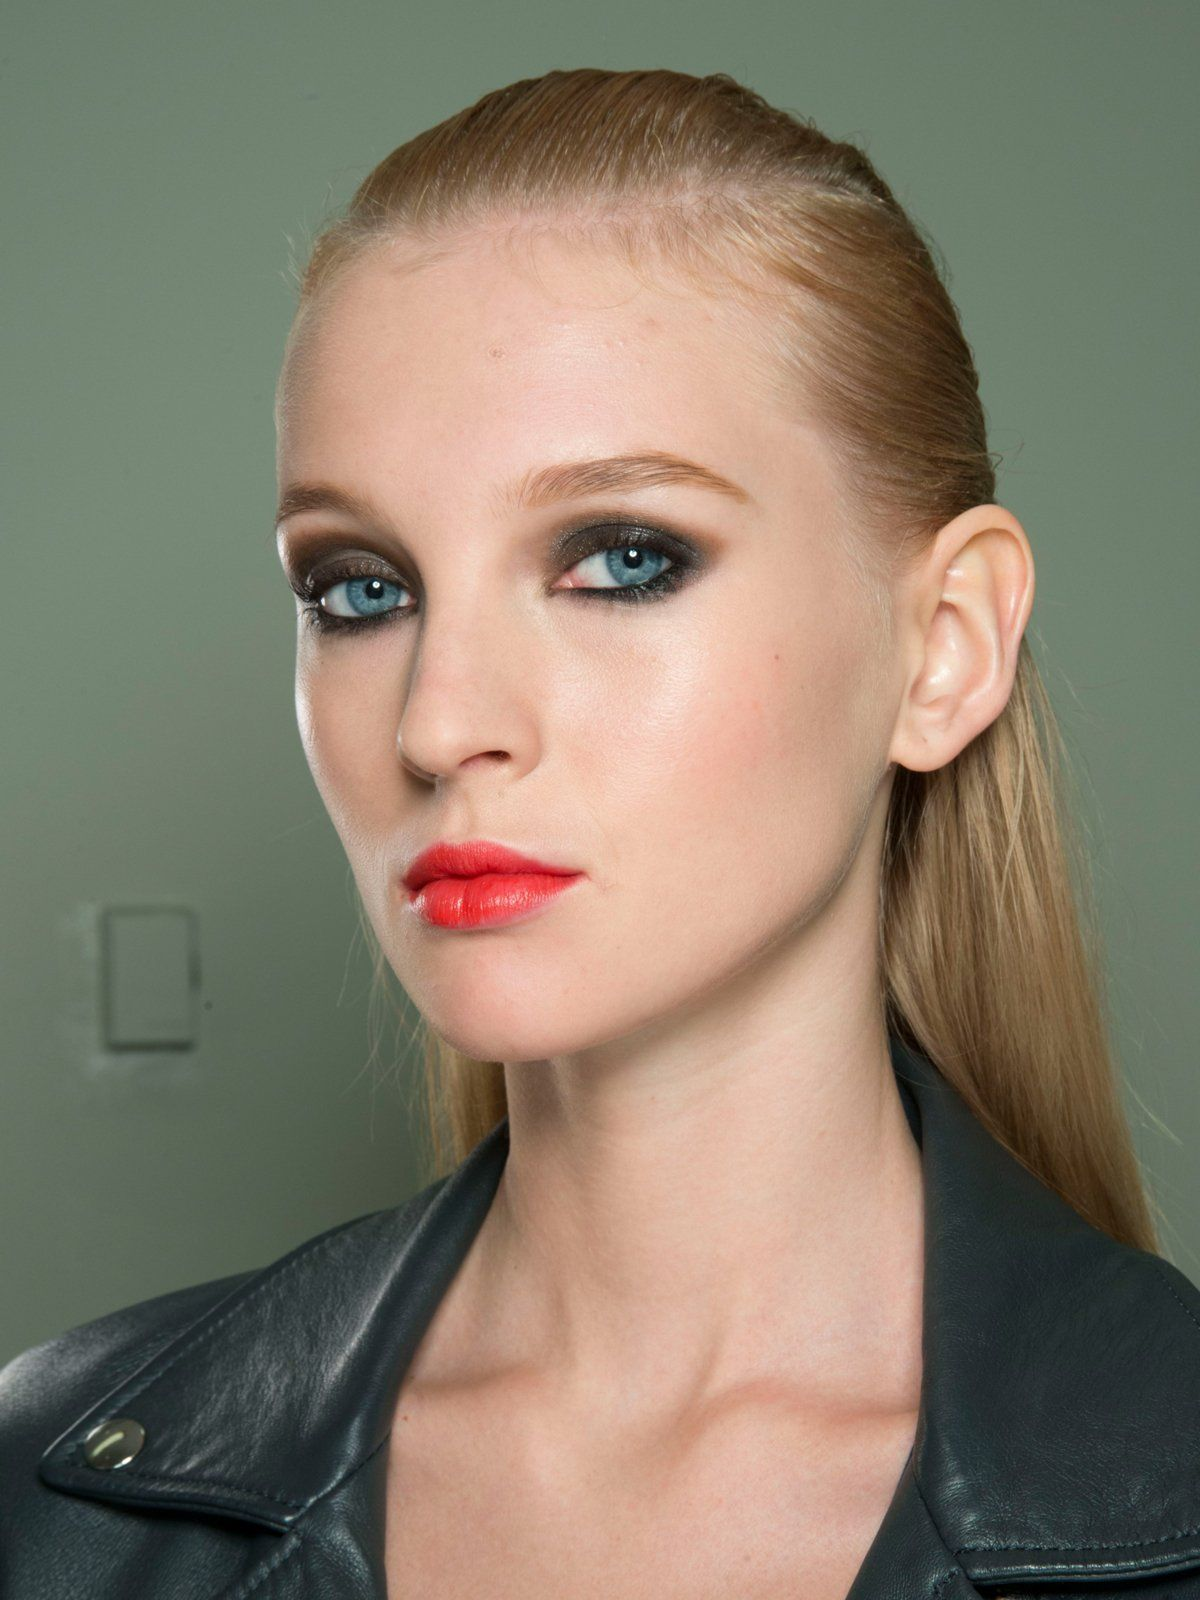 Schöne Lippen Schminken Schminken Make Up Trends 2016 Supermodels